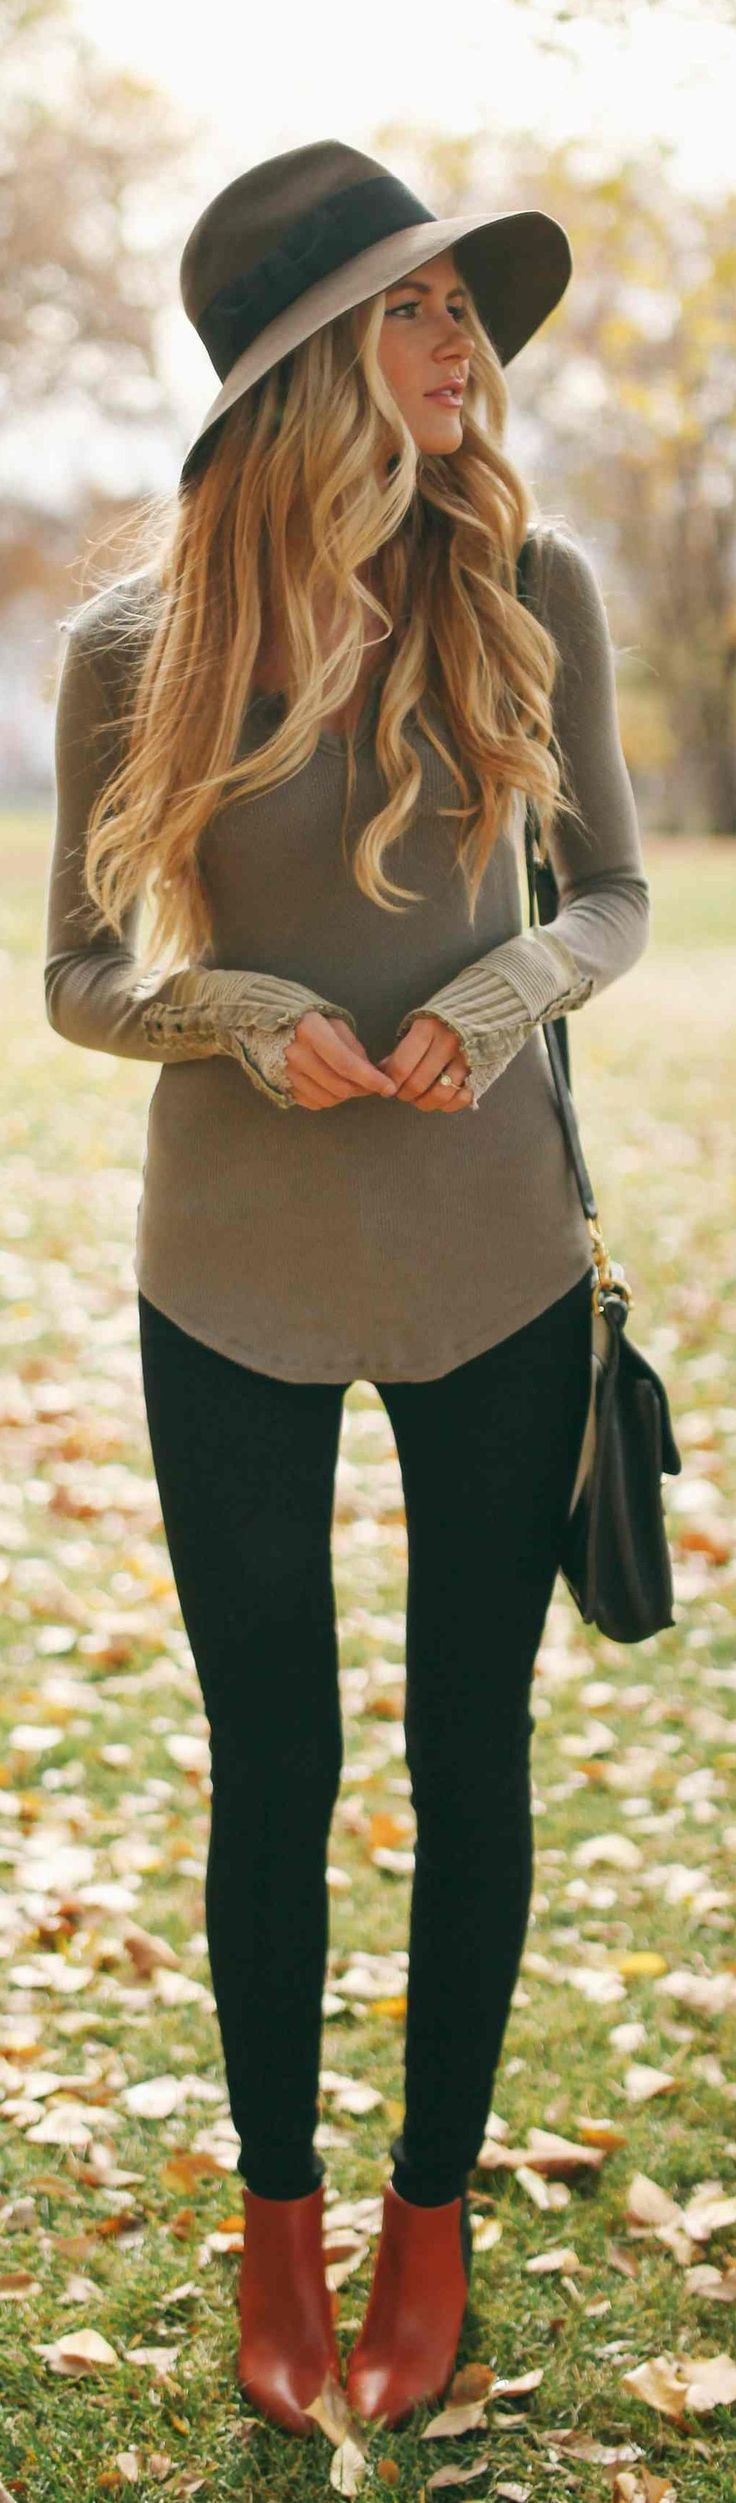 Modern Country Style: Modern Country Style Fashion For Autumn / Fall Click through for details.: